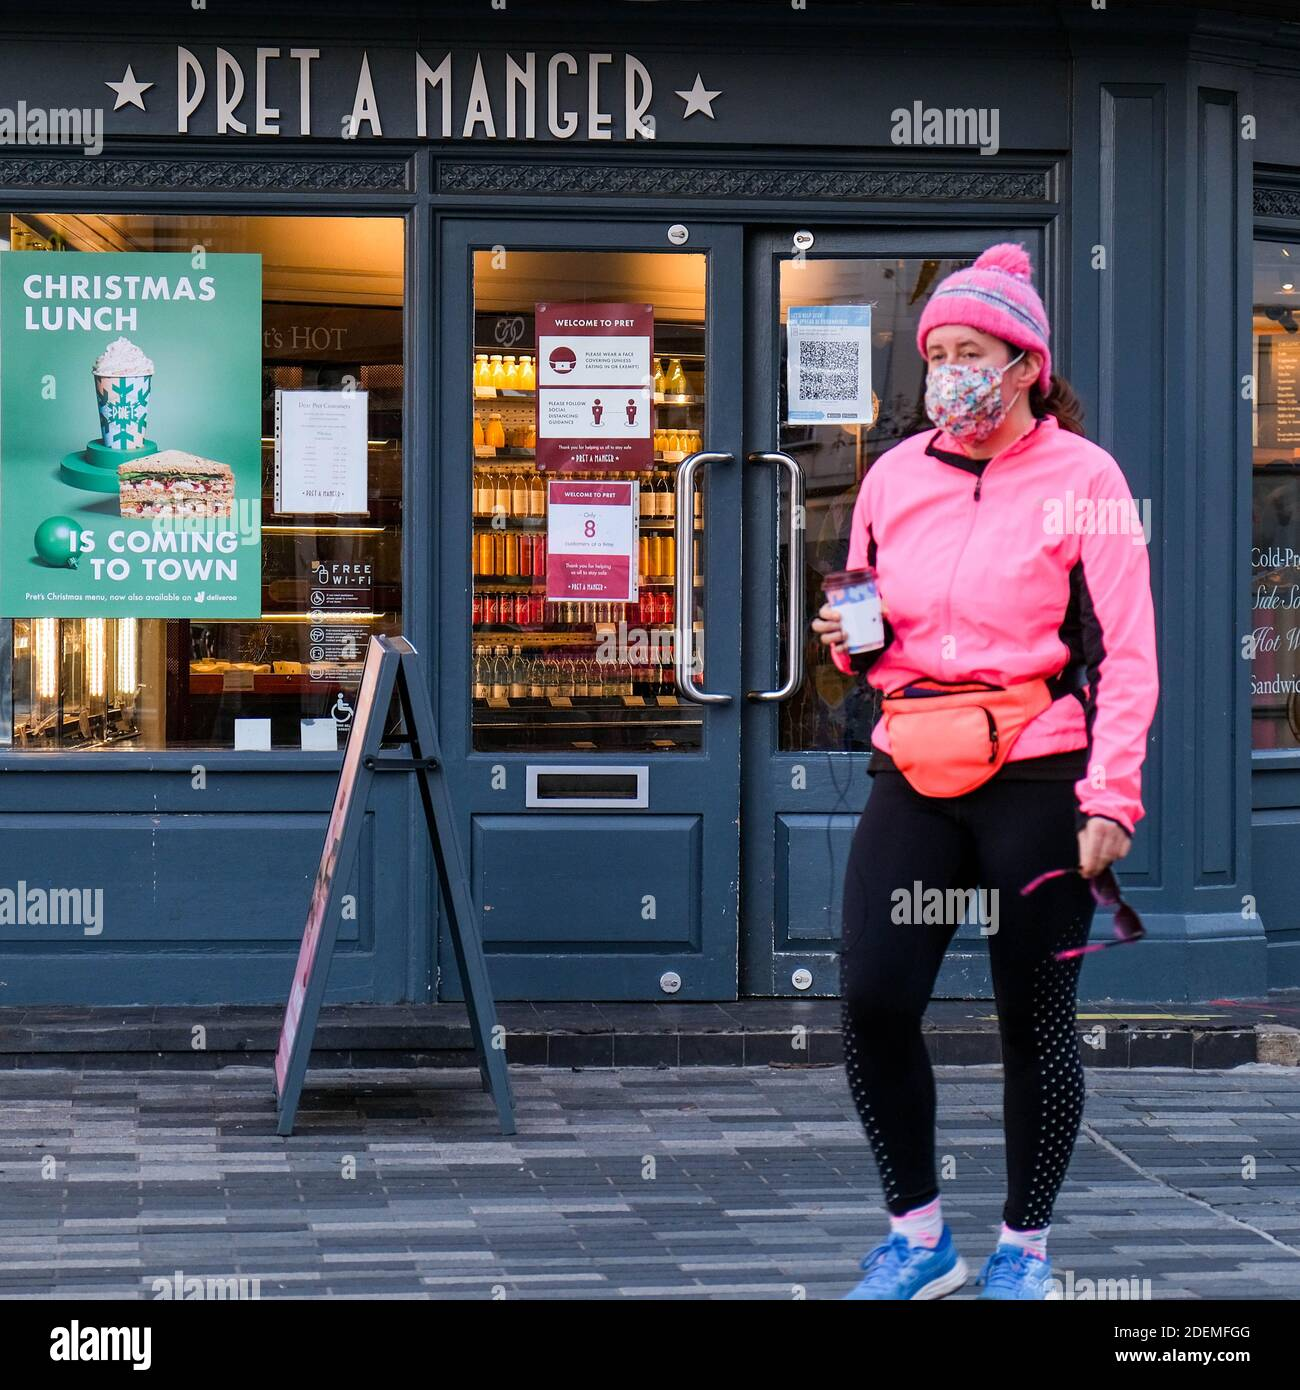 London UK, December 01 2020, Pret A Manger High Street Coffee Takeaway Outlet Open For Takeout Food And Drink During COVID-19 Lockdown Stock Photo